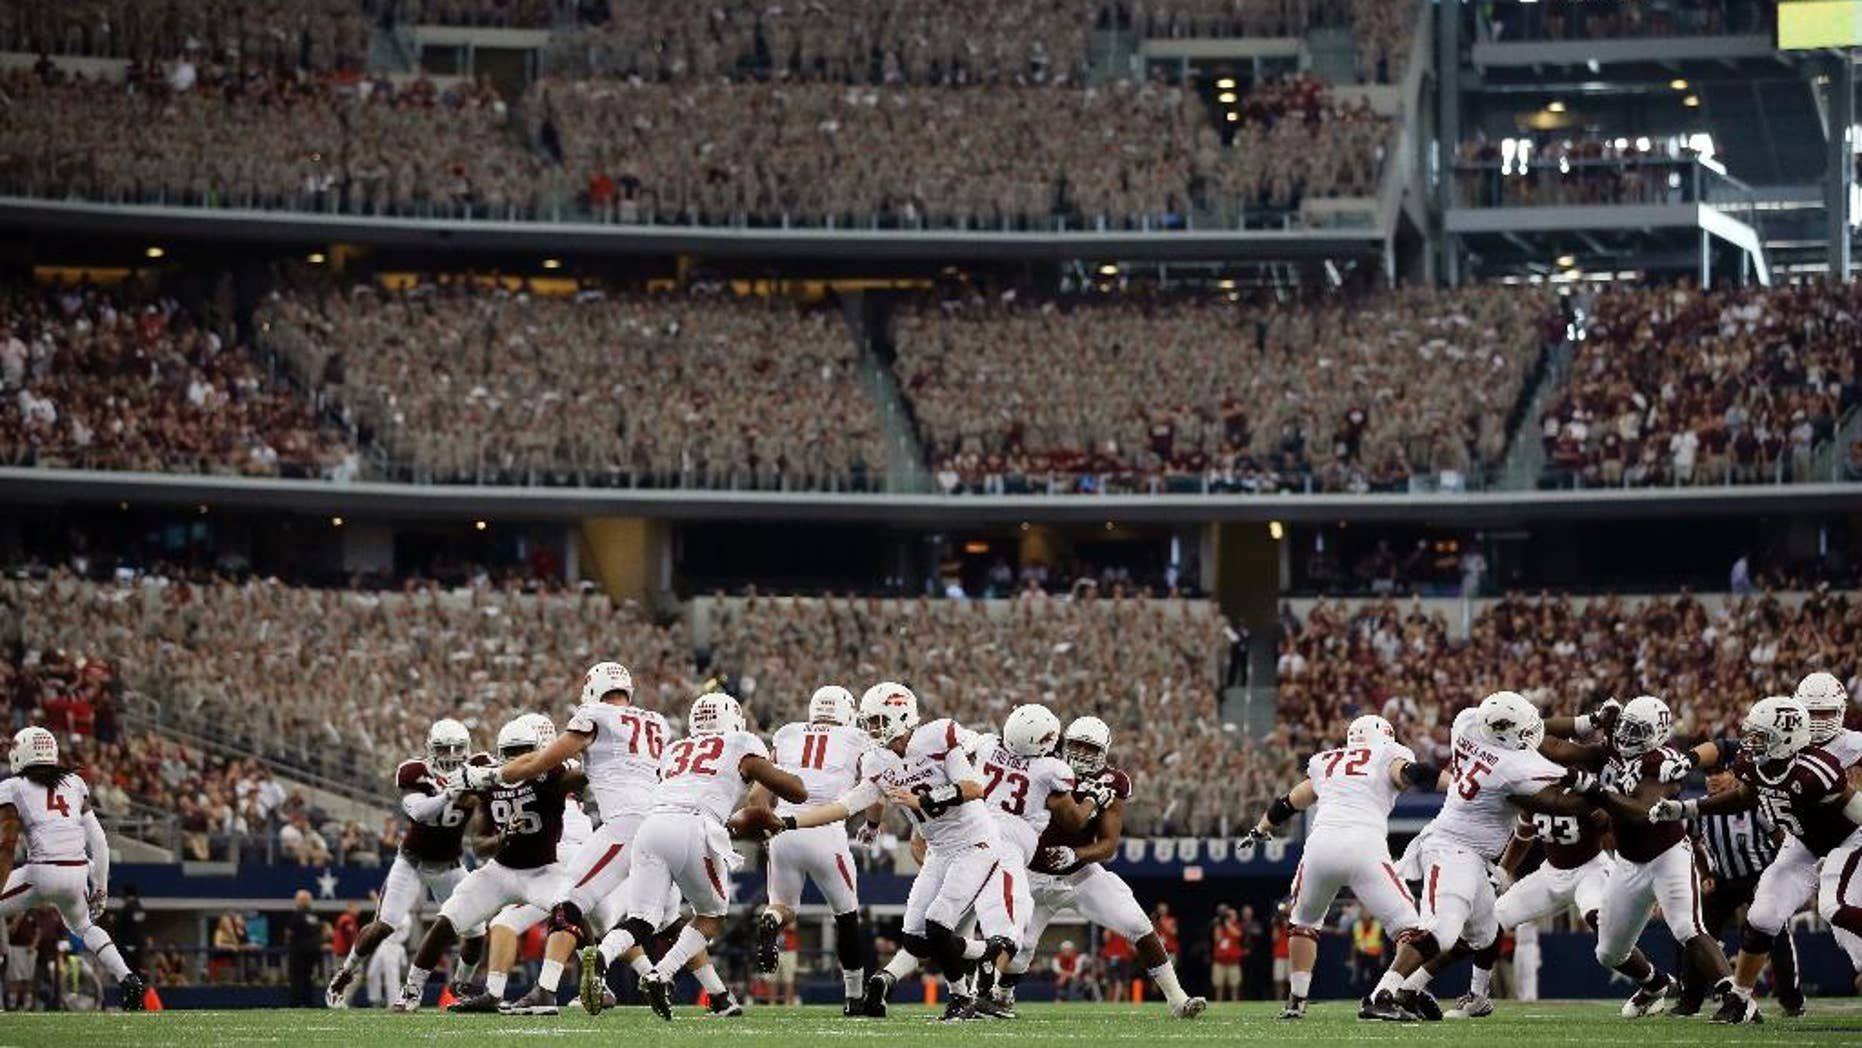 Arkansas quarterback Brandon Allen (10) hands off to running back Jonathan Williams (32) in the first half of an NCAA college football game against Texas A&M, Saturday, Sept. 27, 2014, in Arlington, Texas. The Aggie Corps. of Cadets fill the stadium seats at rear during the game. (AP Photo/Tony Gutierrez)